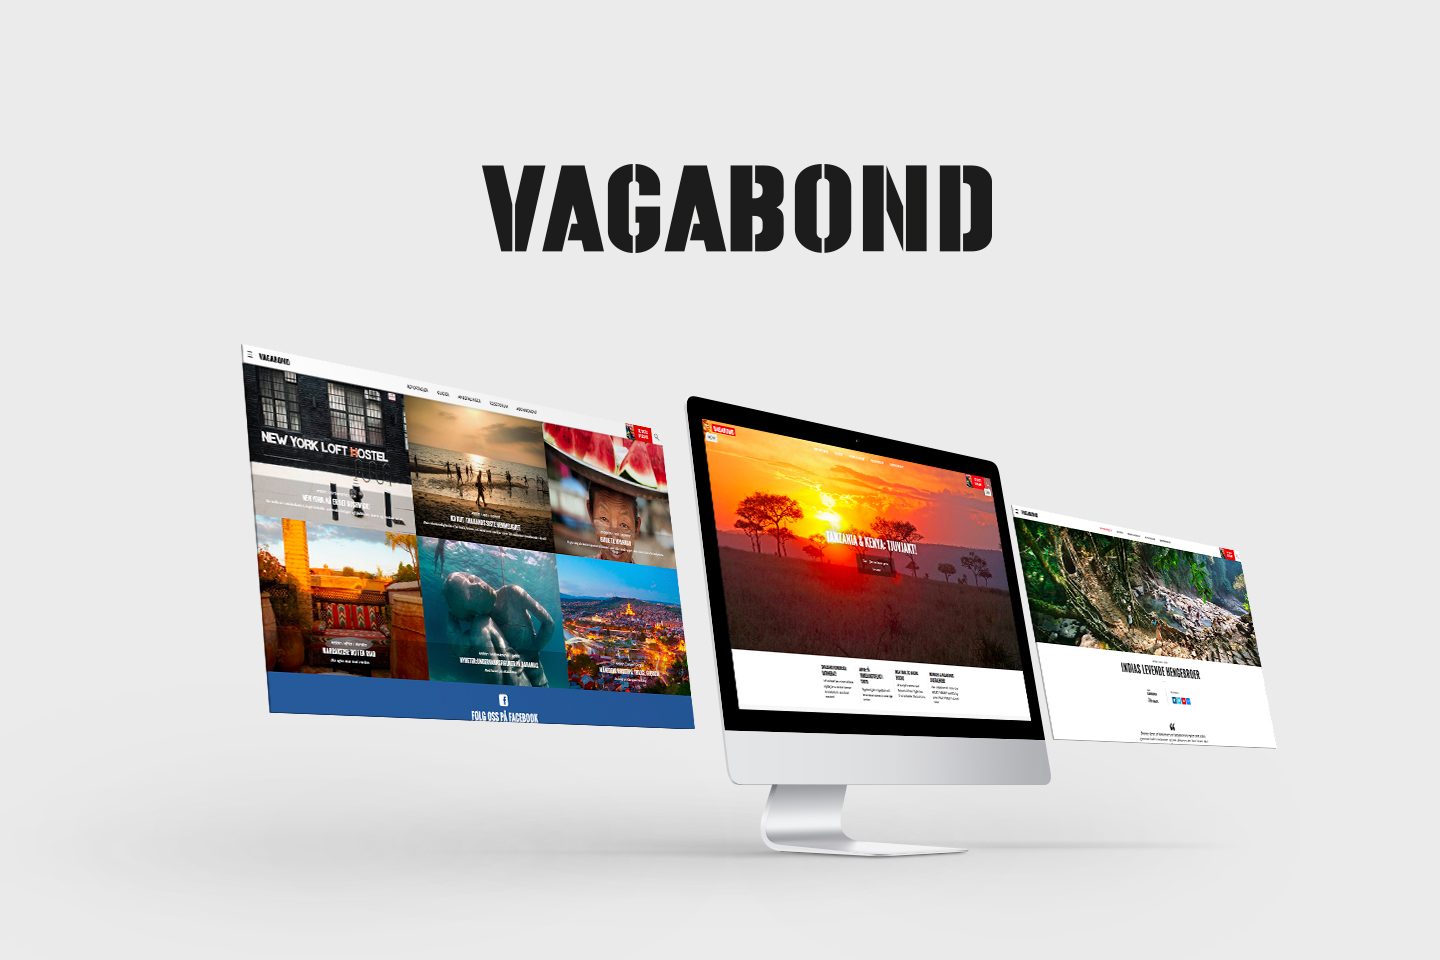 Vagabond website on imac